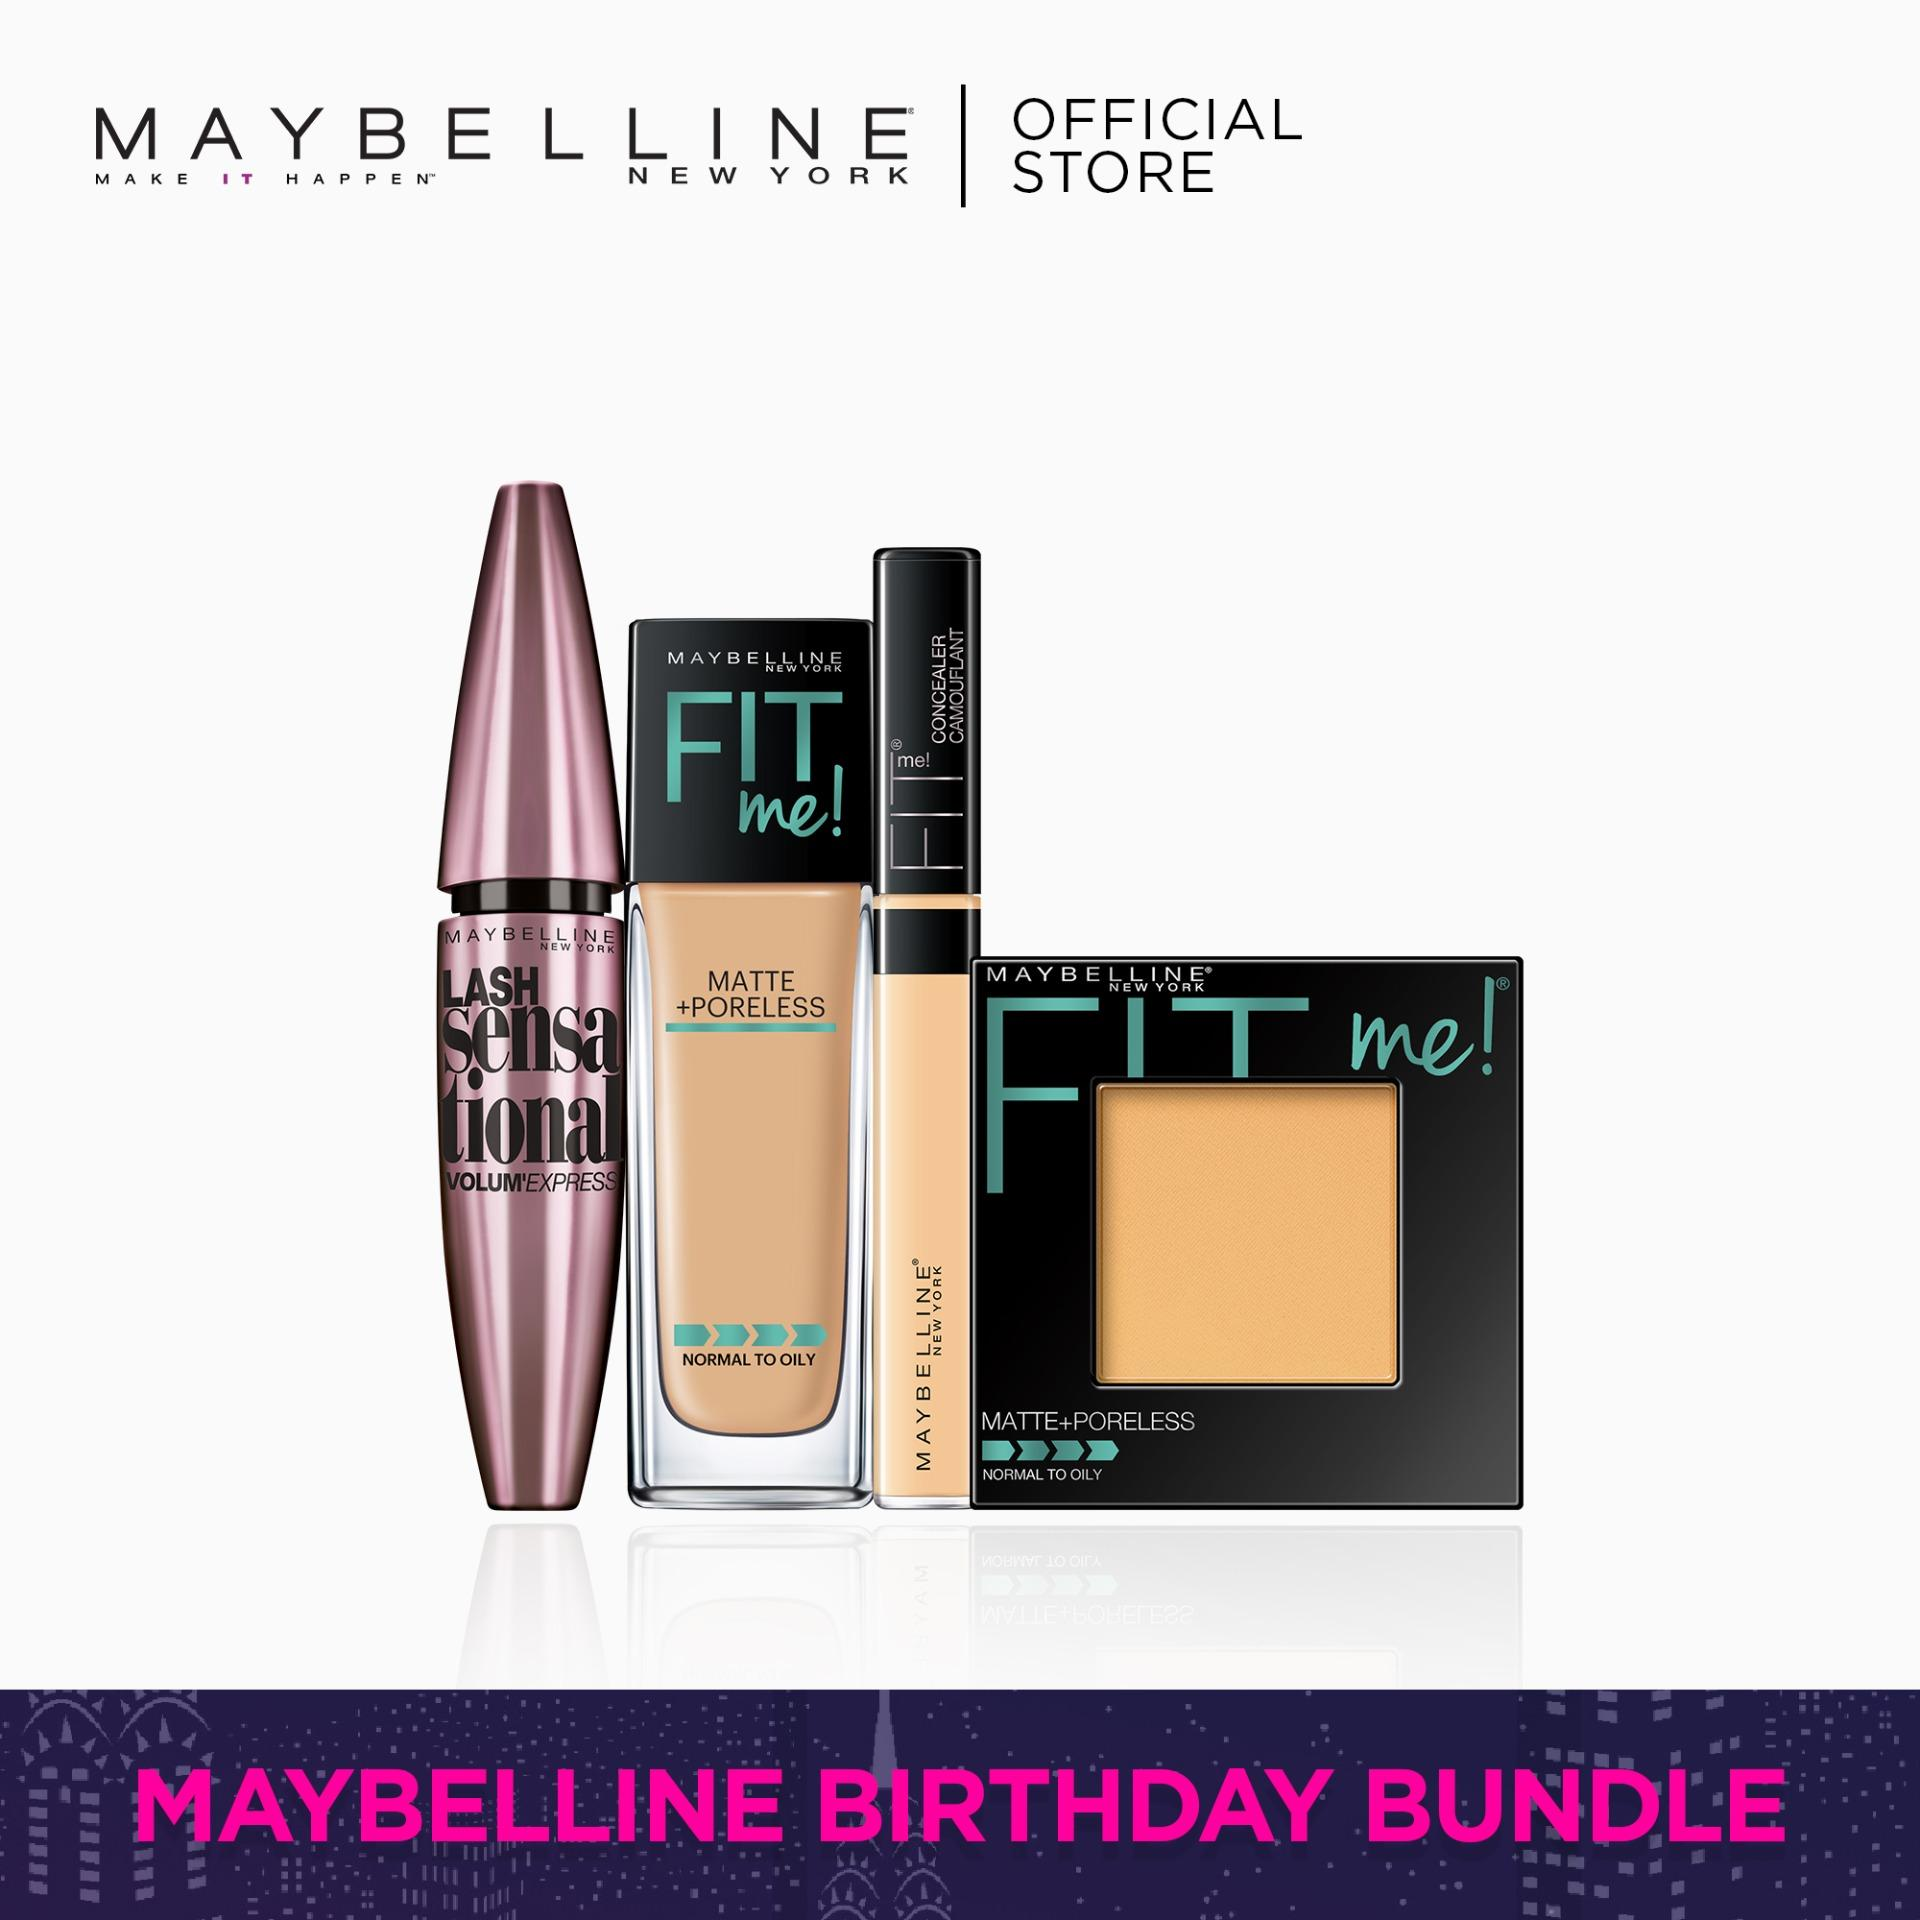 I Found My Fit: 228 Foundation + 220 Powder + 25 Concealer + Lash Sensational by Maybelline Fit Me Philippines